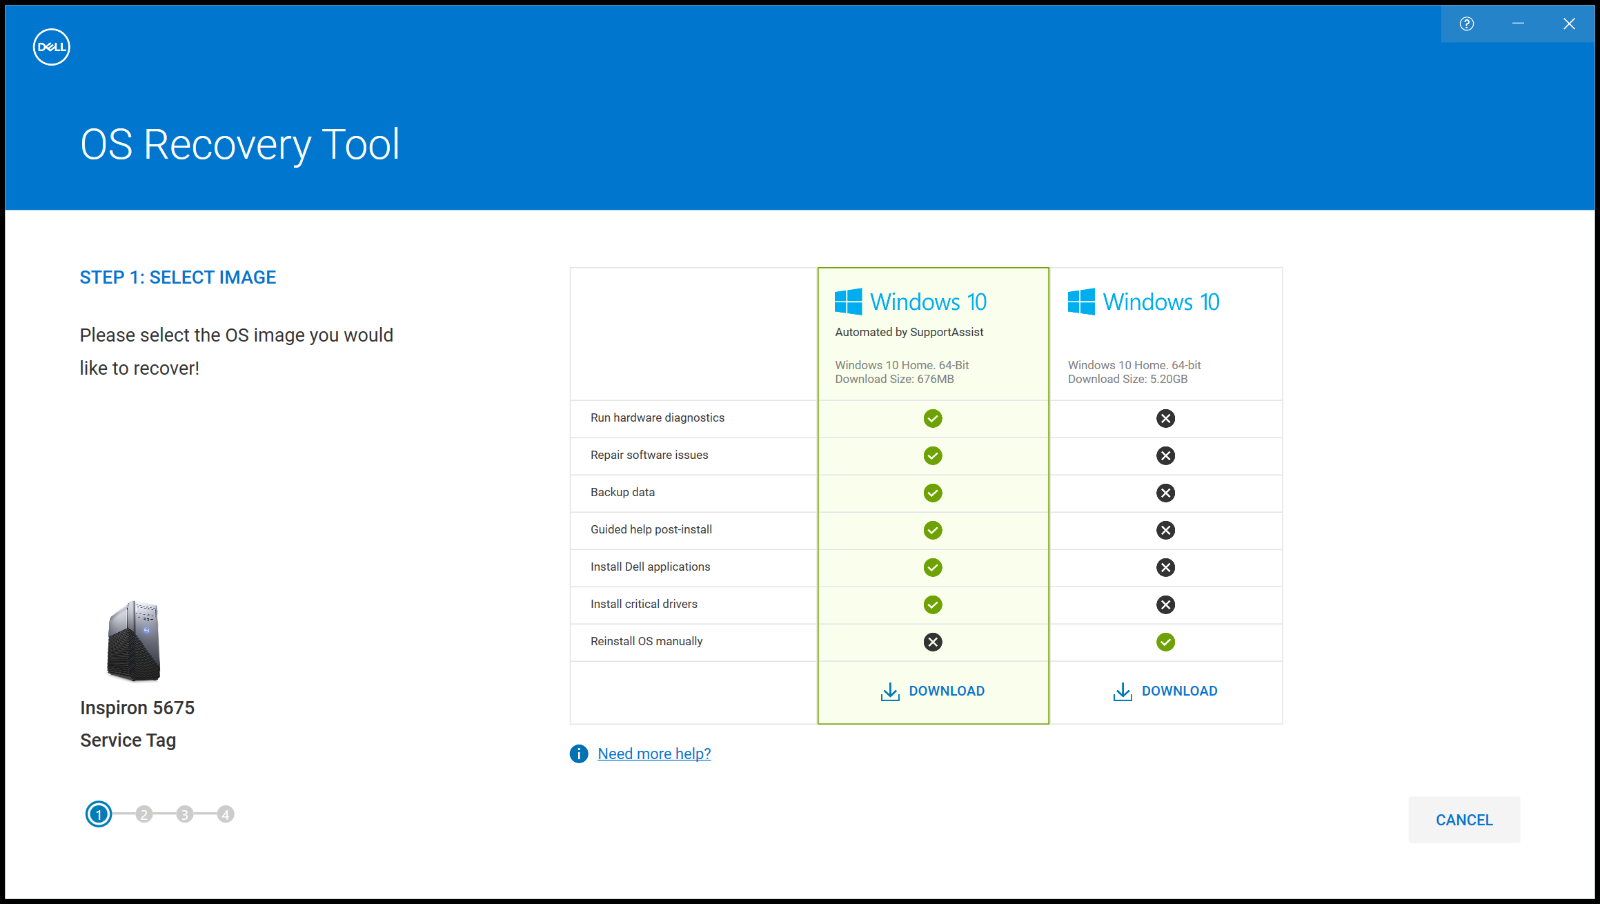 Difference between Windows 10 Automated by SupportAssist and Windows 10 images